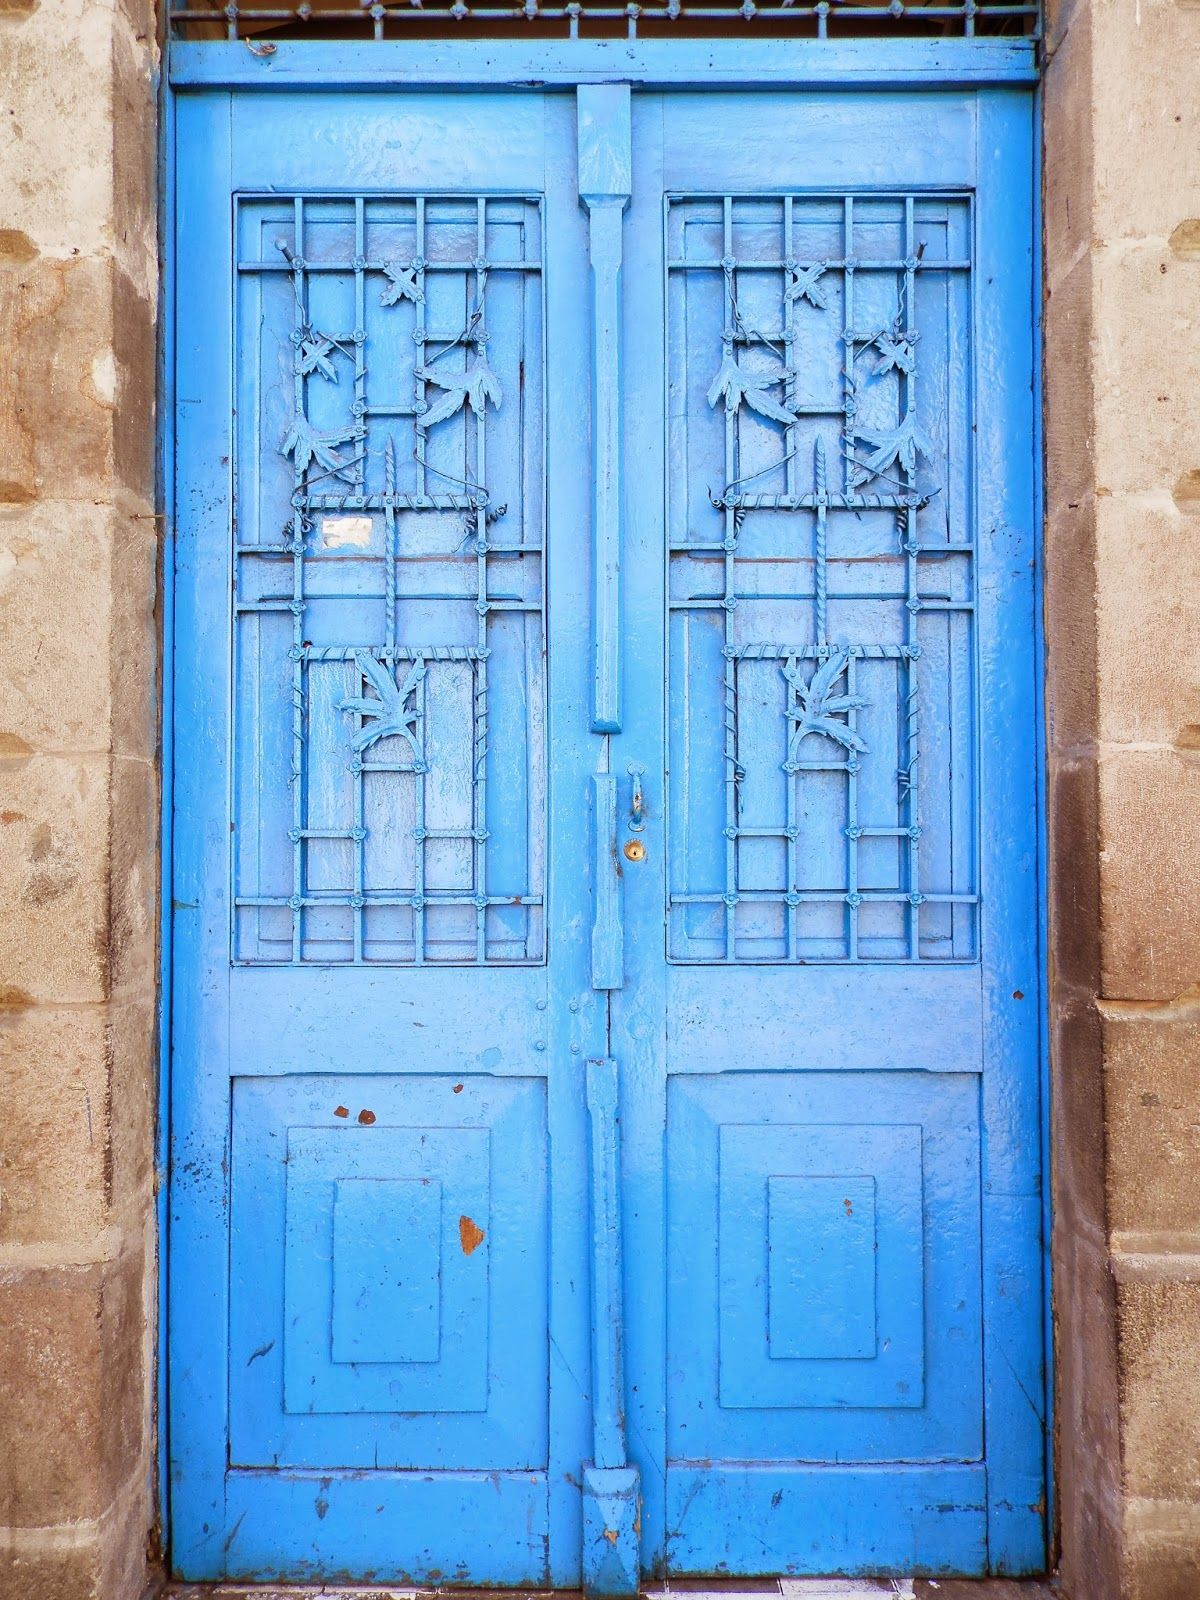 Odysseus Journal Beautiful Doors Windows Of Ecuador Windows Doors Cool Doors Doors